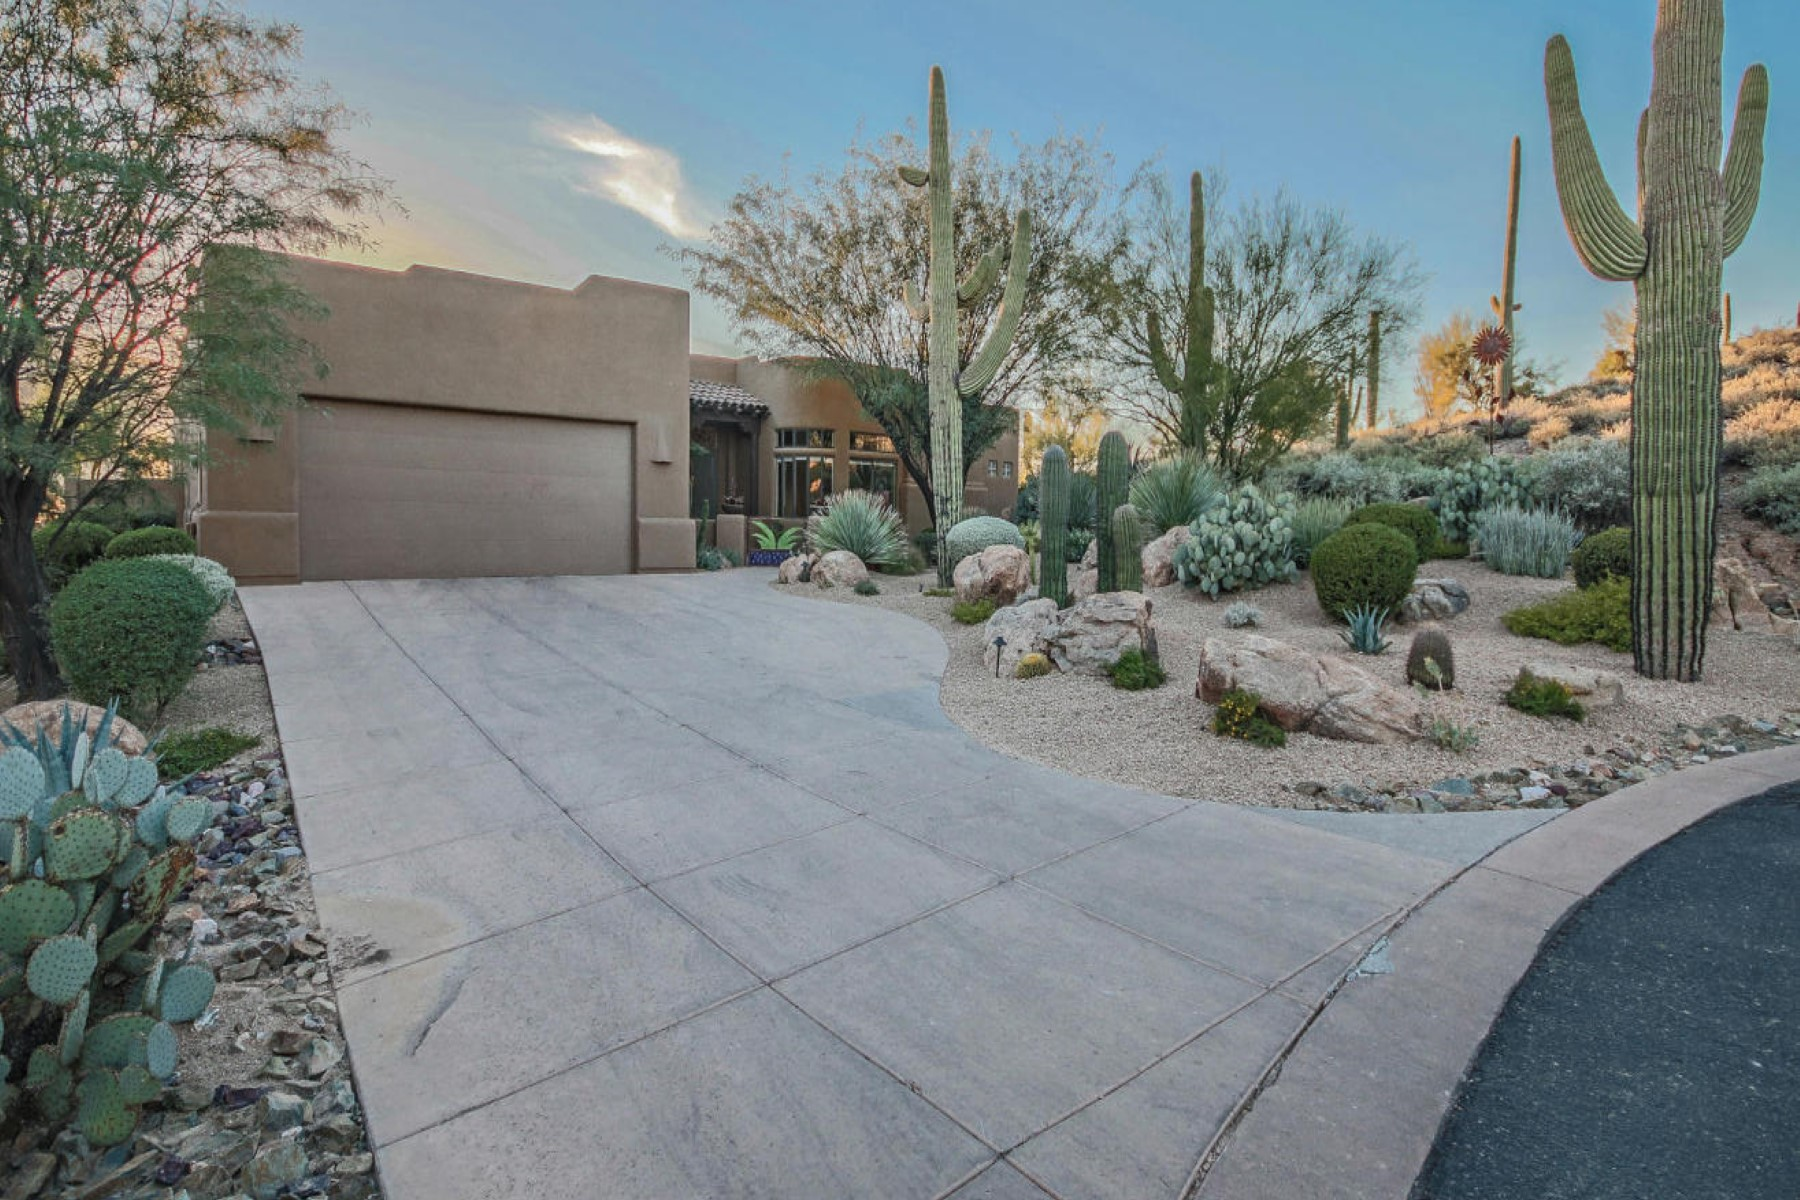 Property For Sale at Beautiful home in a private desert setting in an exclusive enclave